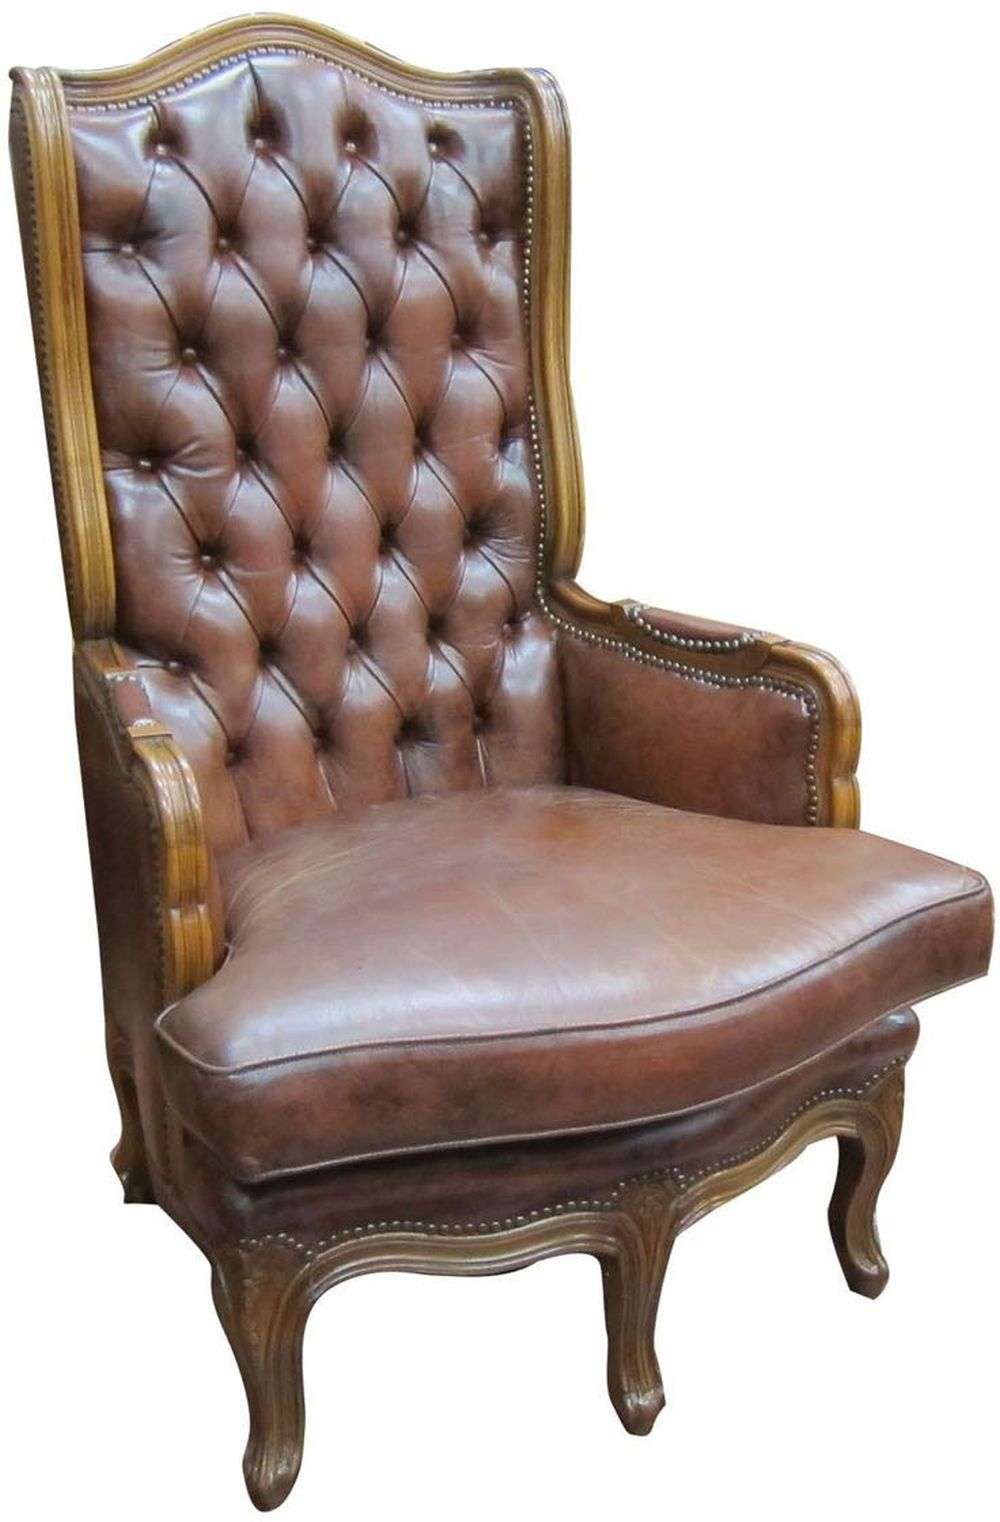 Vintage English brown leather armchair